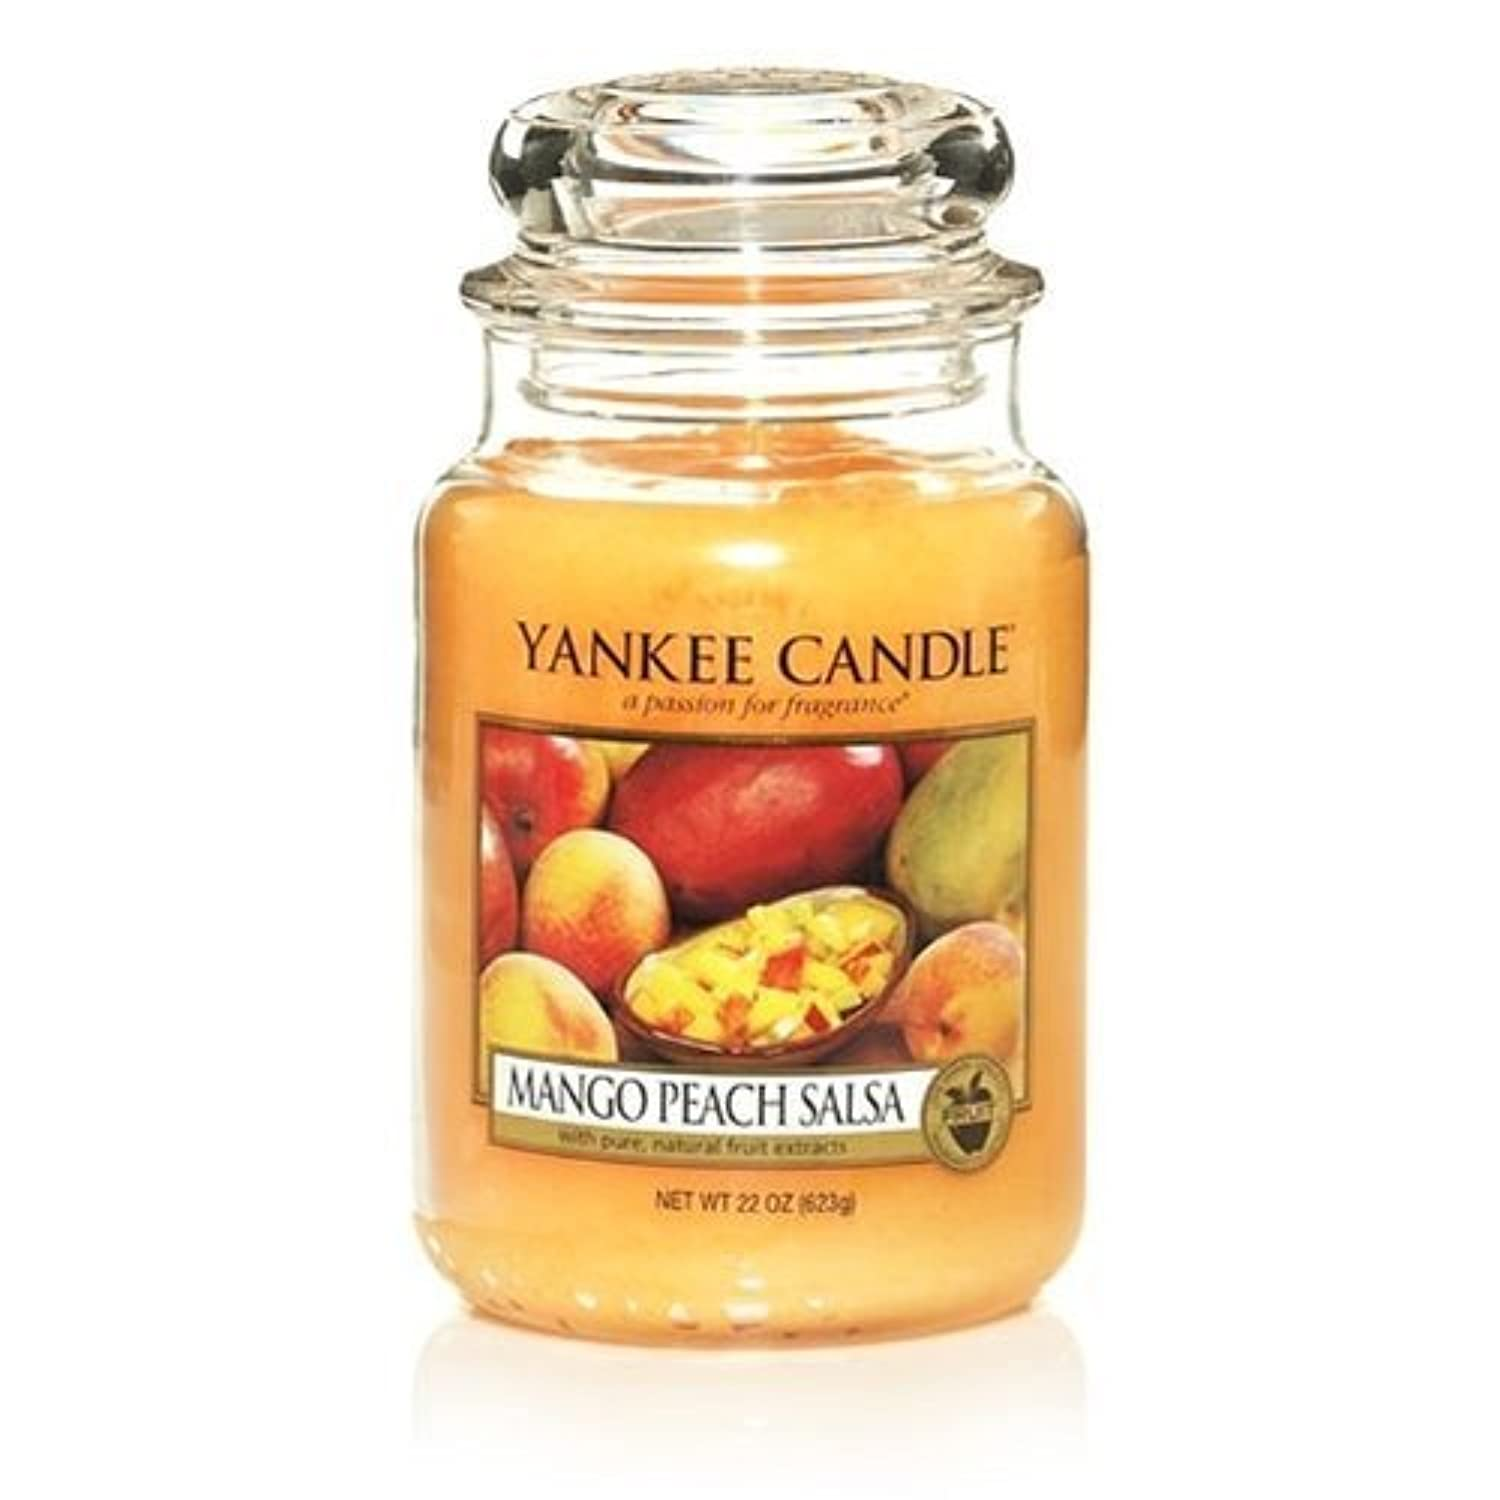 Yankee Candle 22-Ounce Jar Scented Candle, Large, Mango Peach Salsa by Amazon source [並行輸入品]